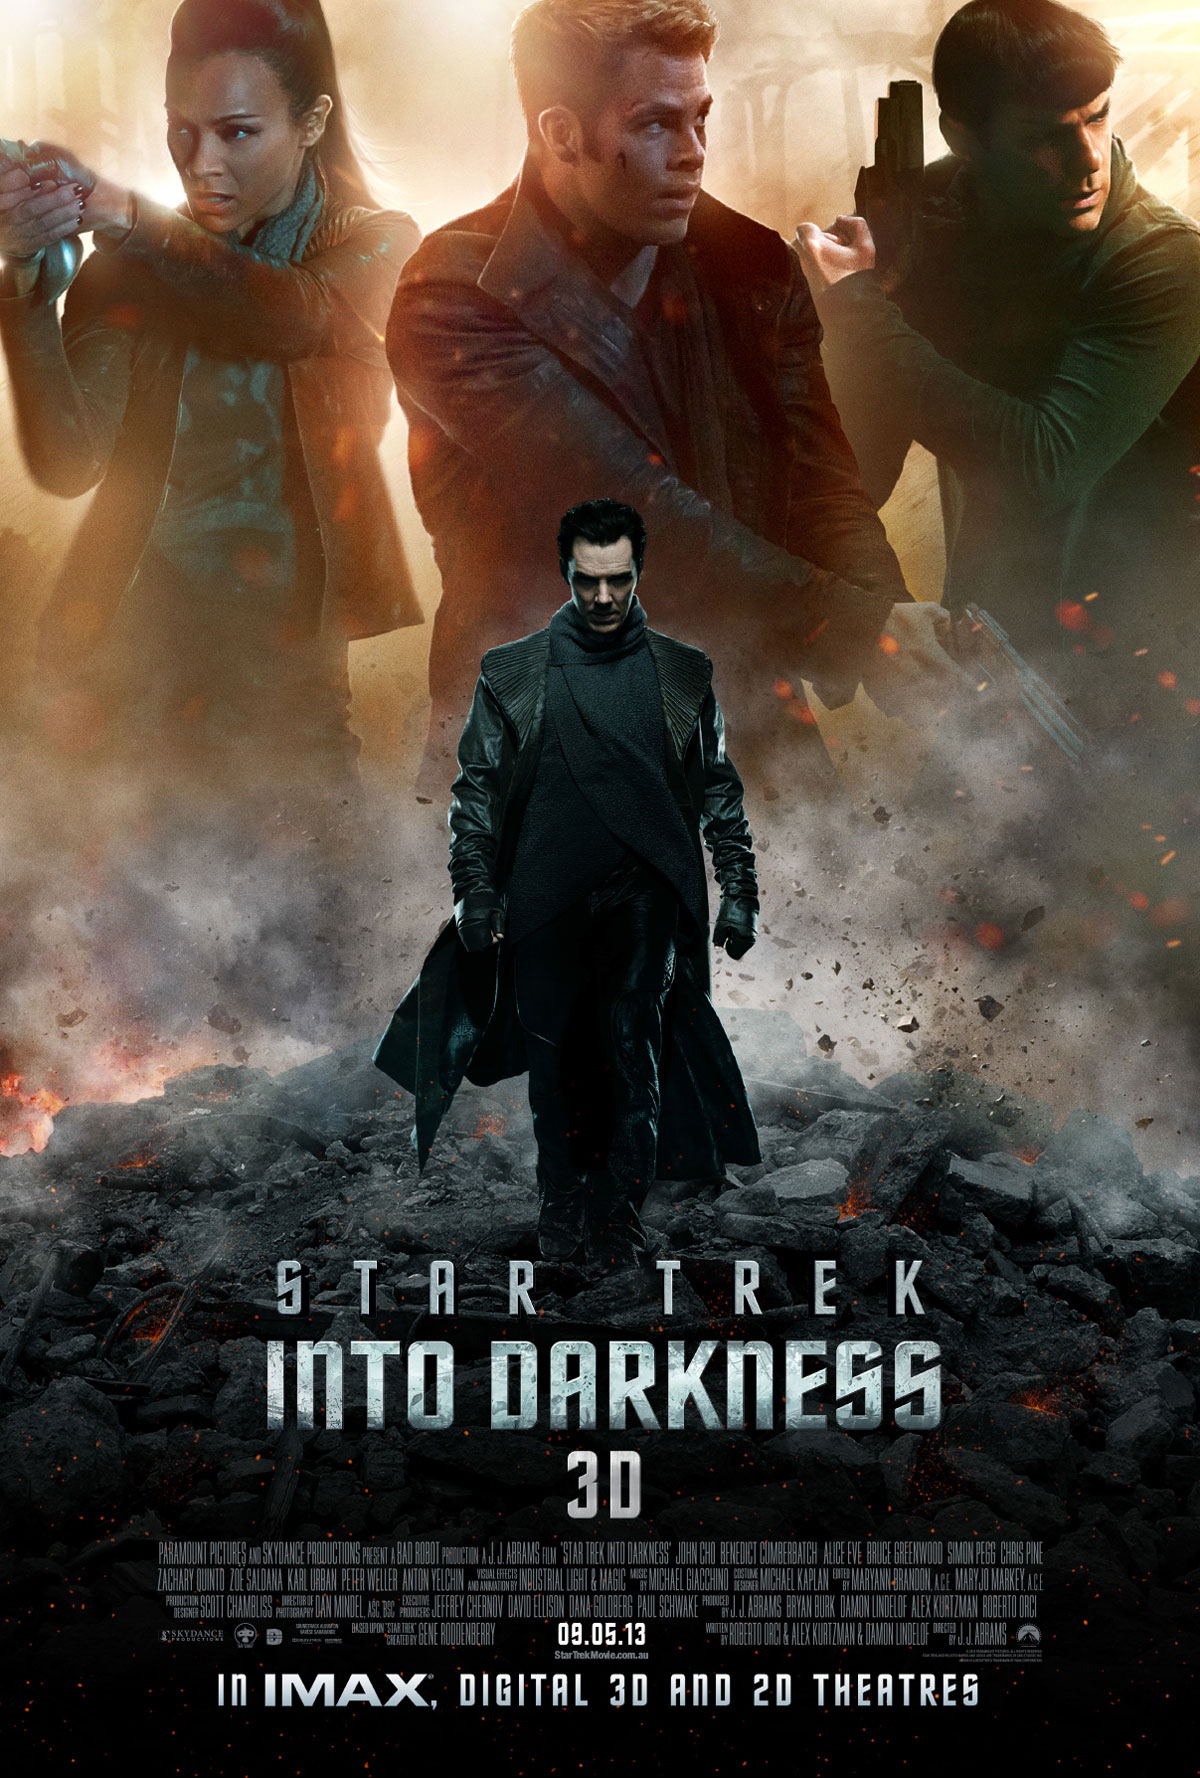 http://collider.com/wp-content/uploads/star-trek-2-into-darkness-poster.jpg